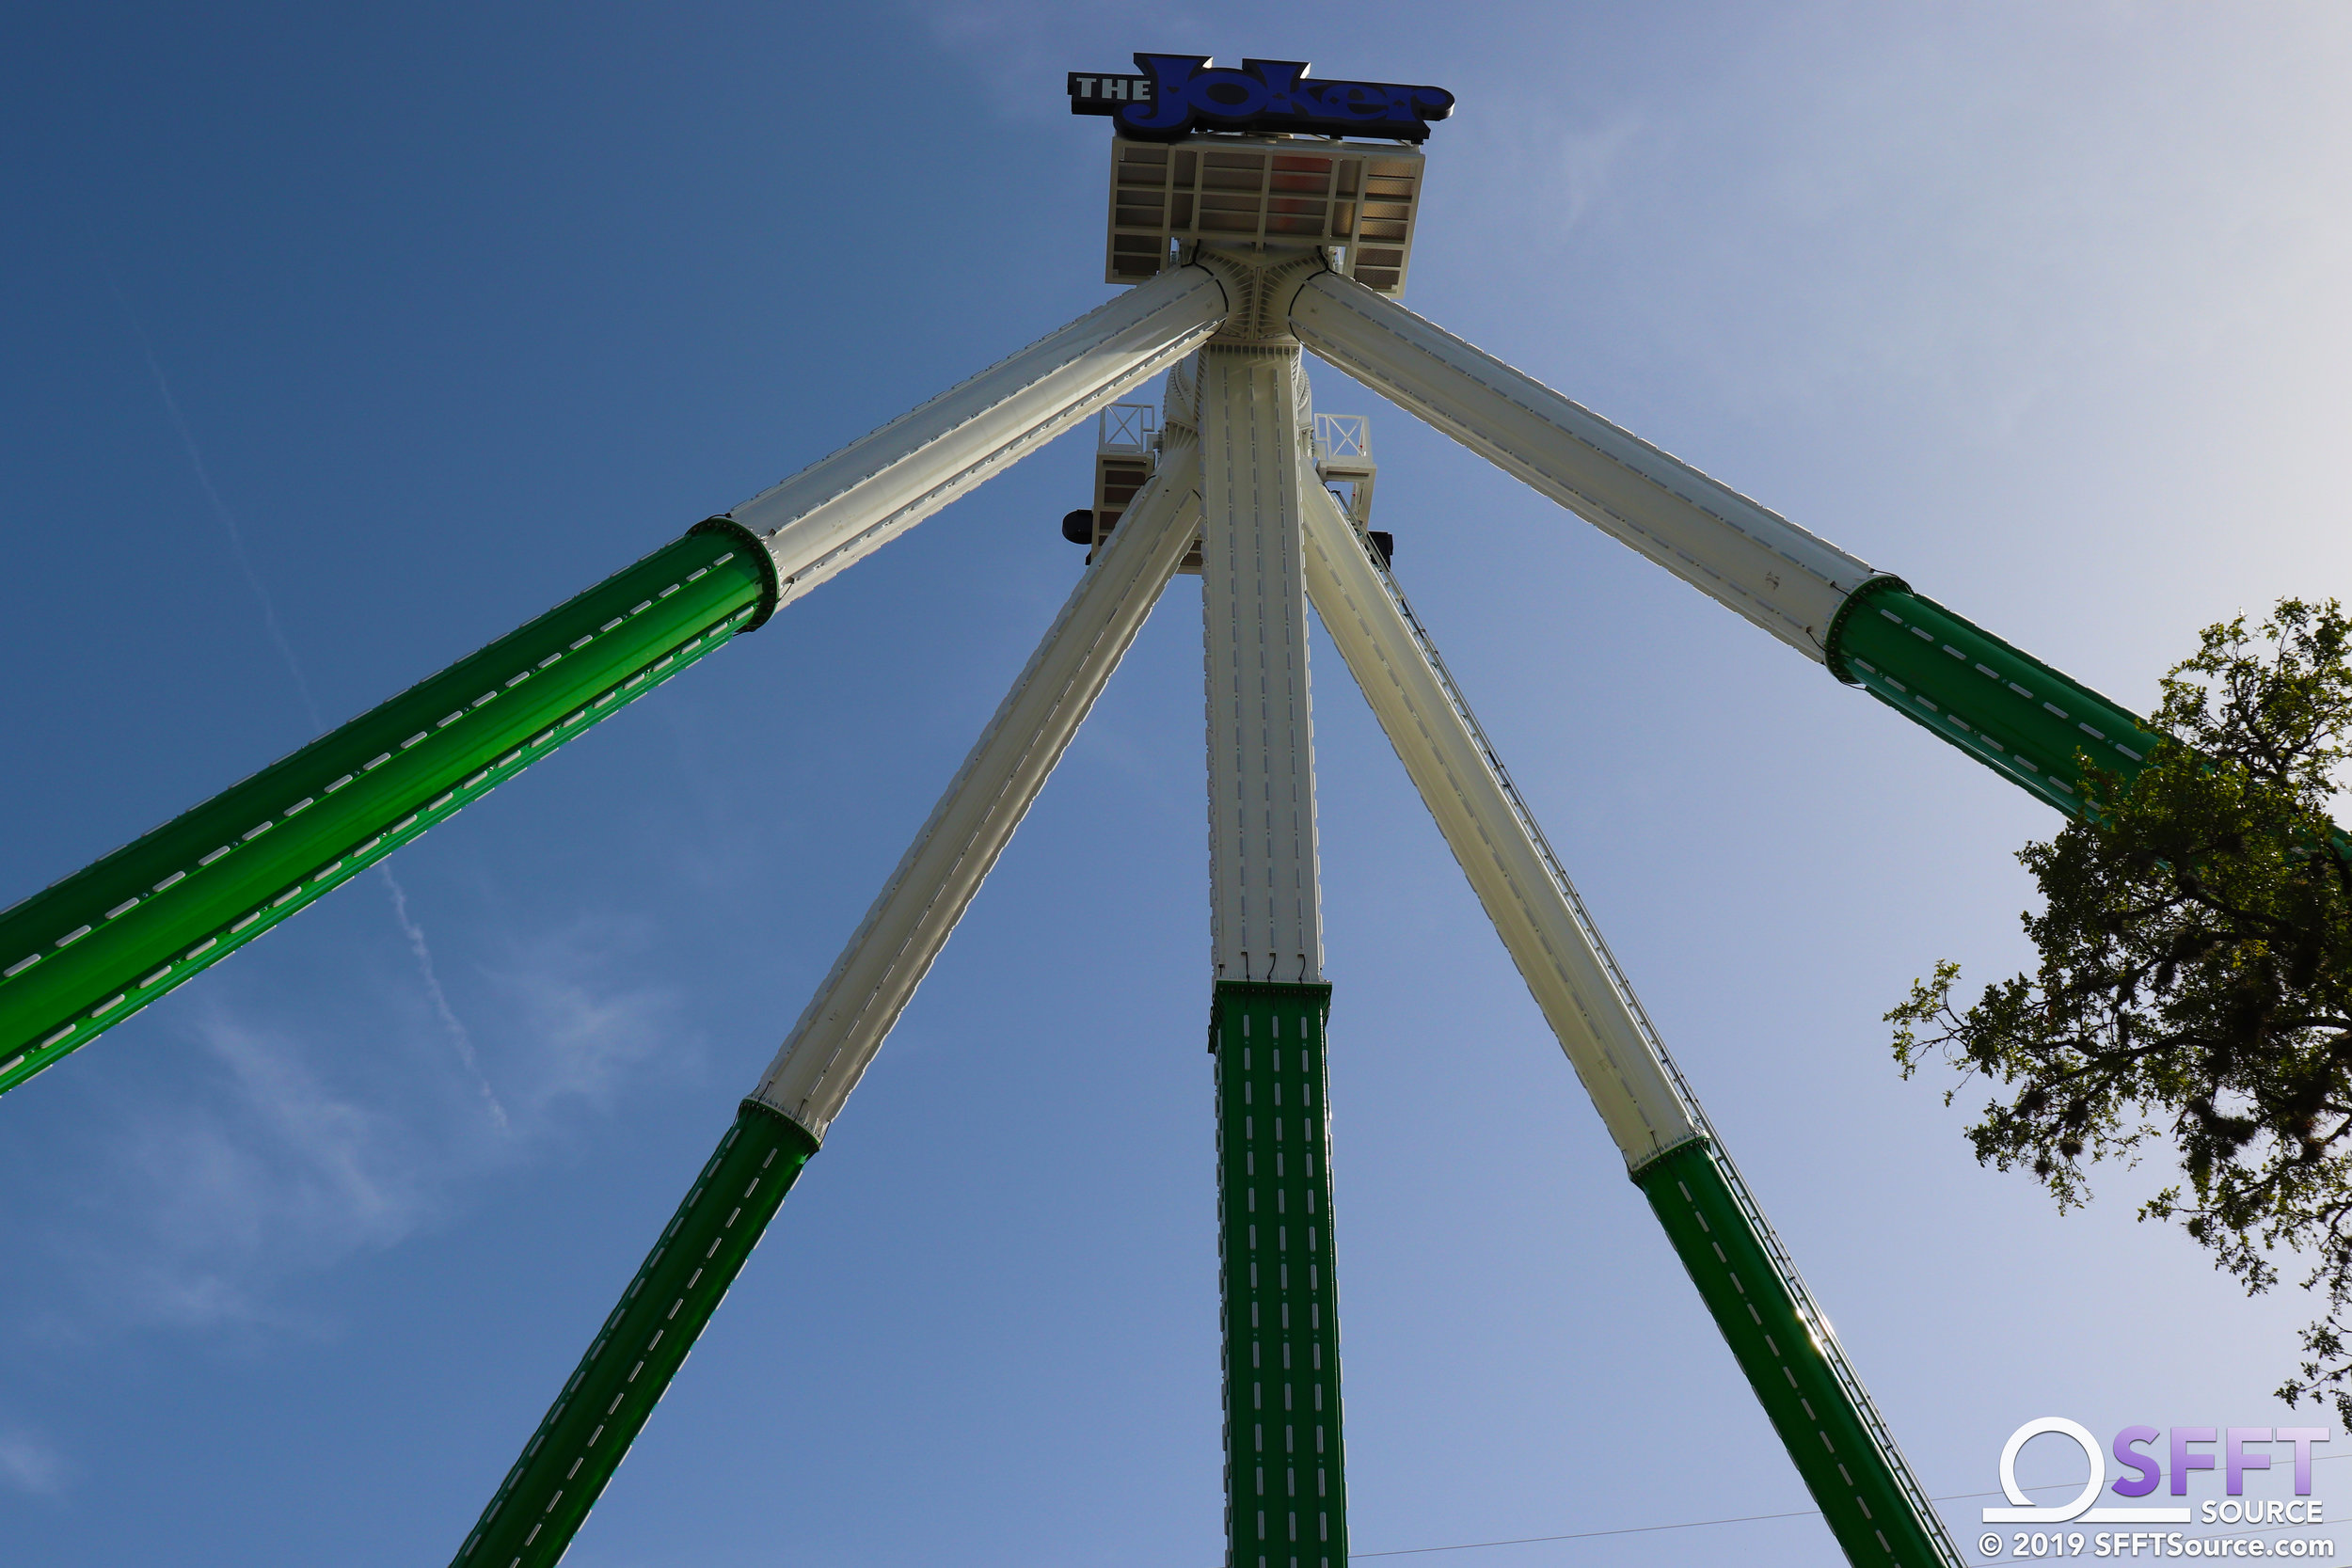 The Joker Carnival of Chaos is a Zamperla Giga Discovery attraction.